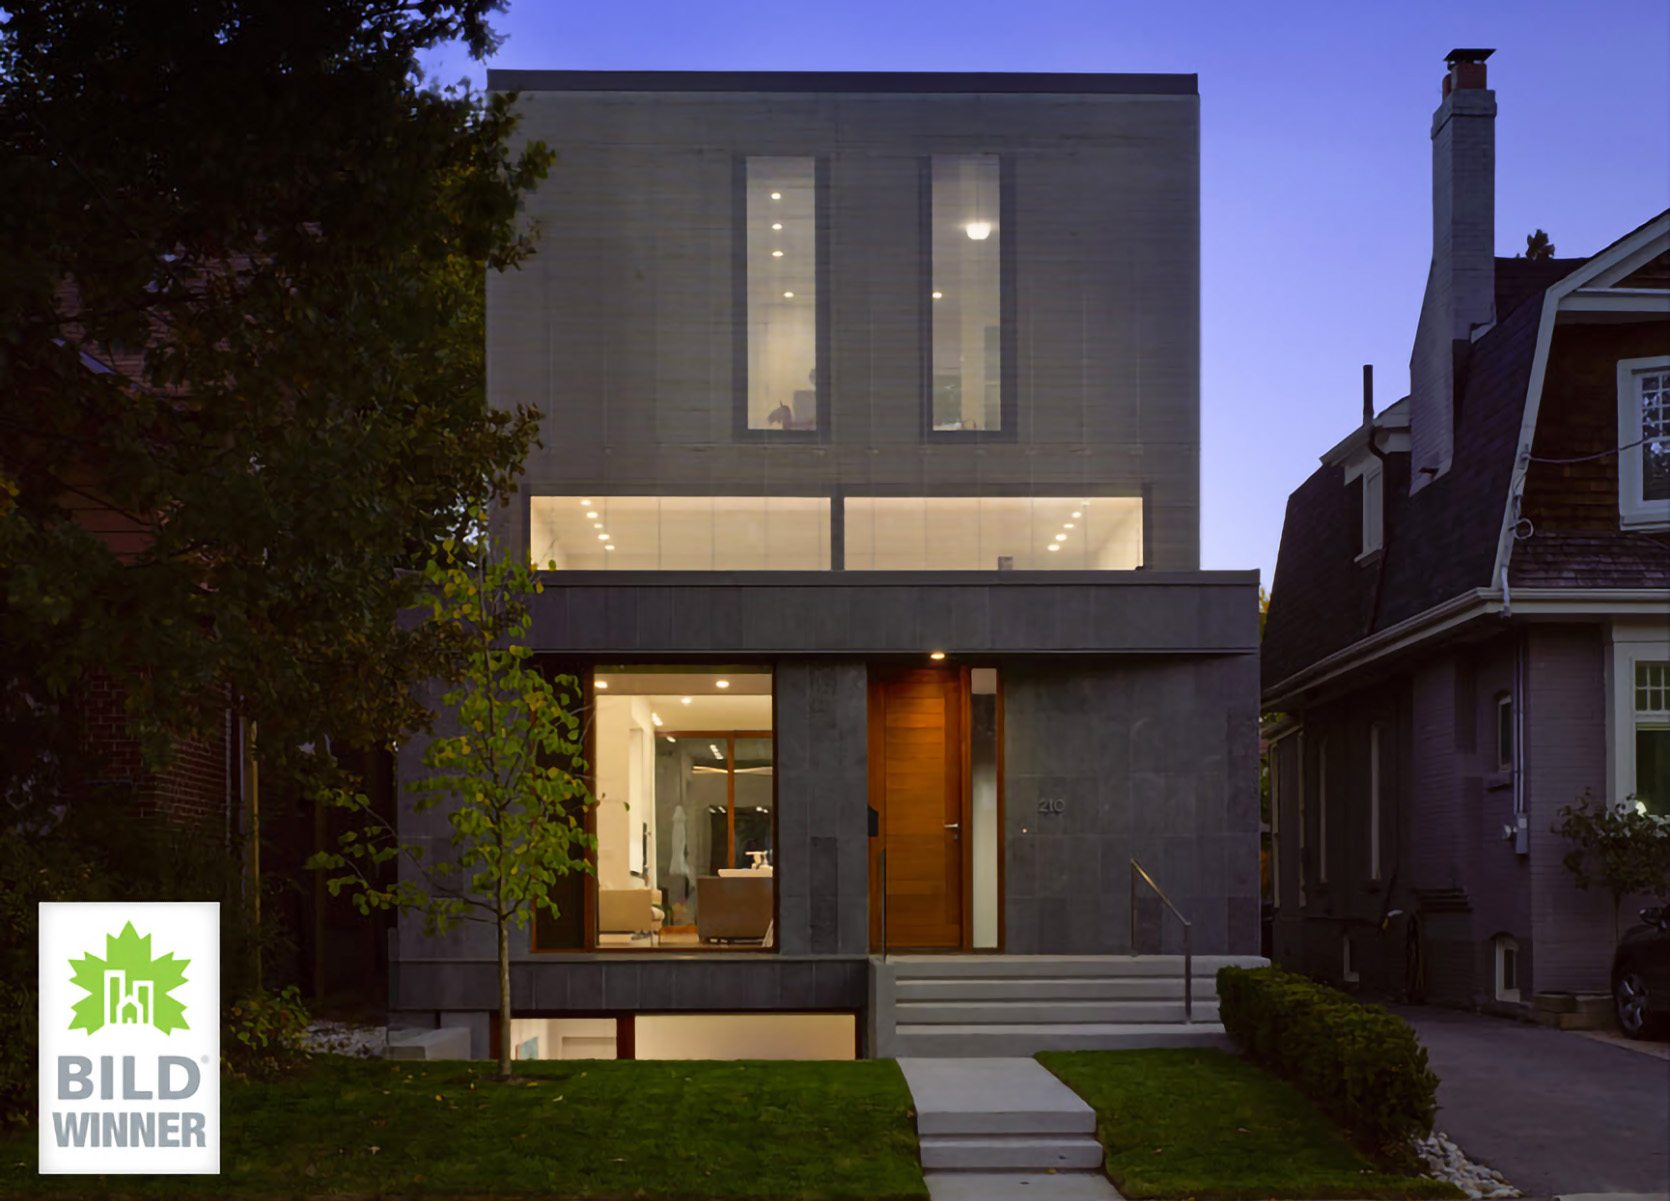 counterpoint-house-front-exterior-night